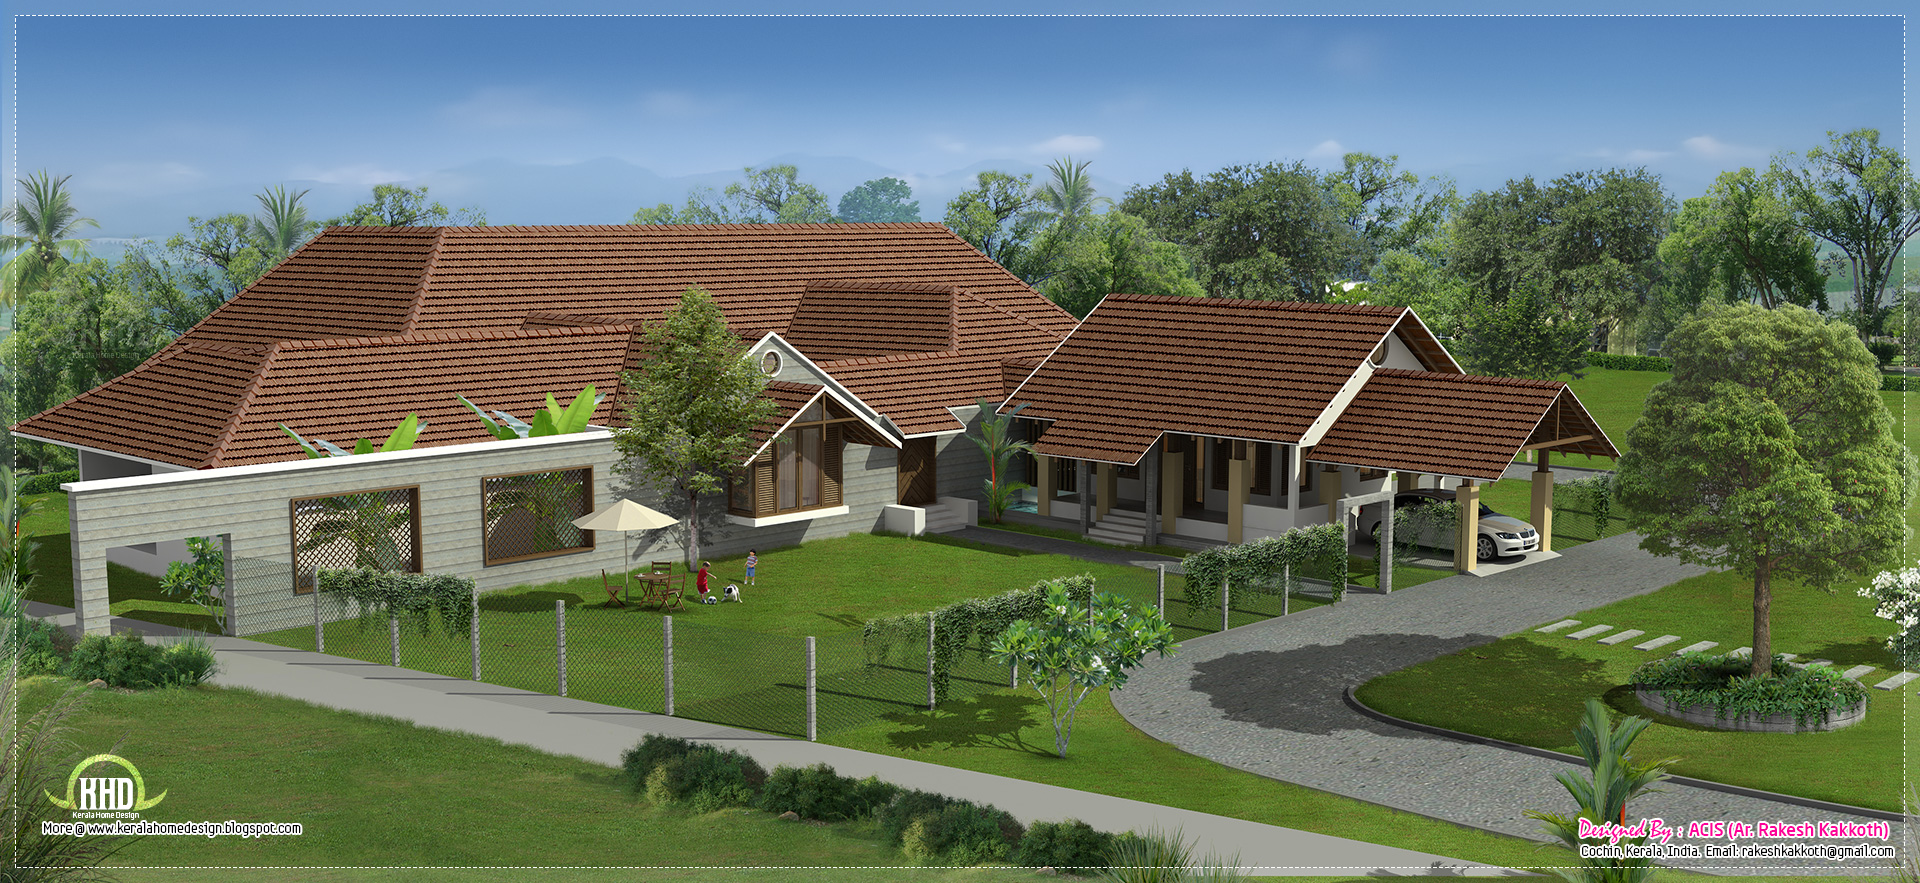 Luxury bungalow exterior design kerala home design and for Bungalow outside design